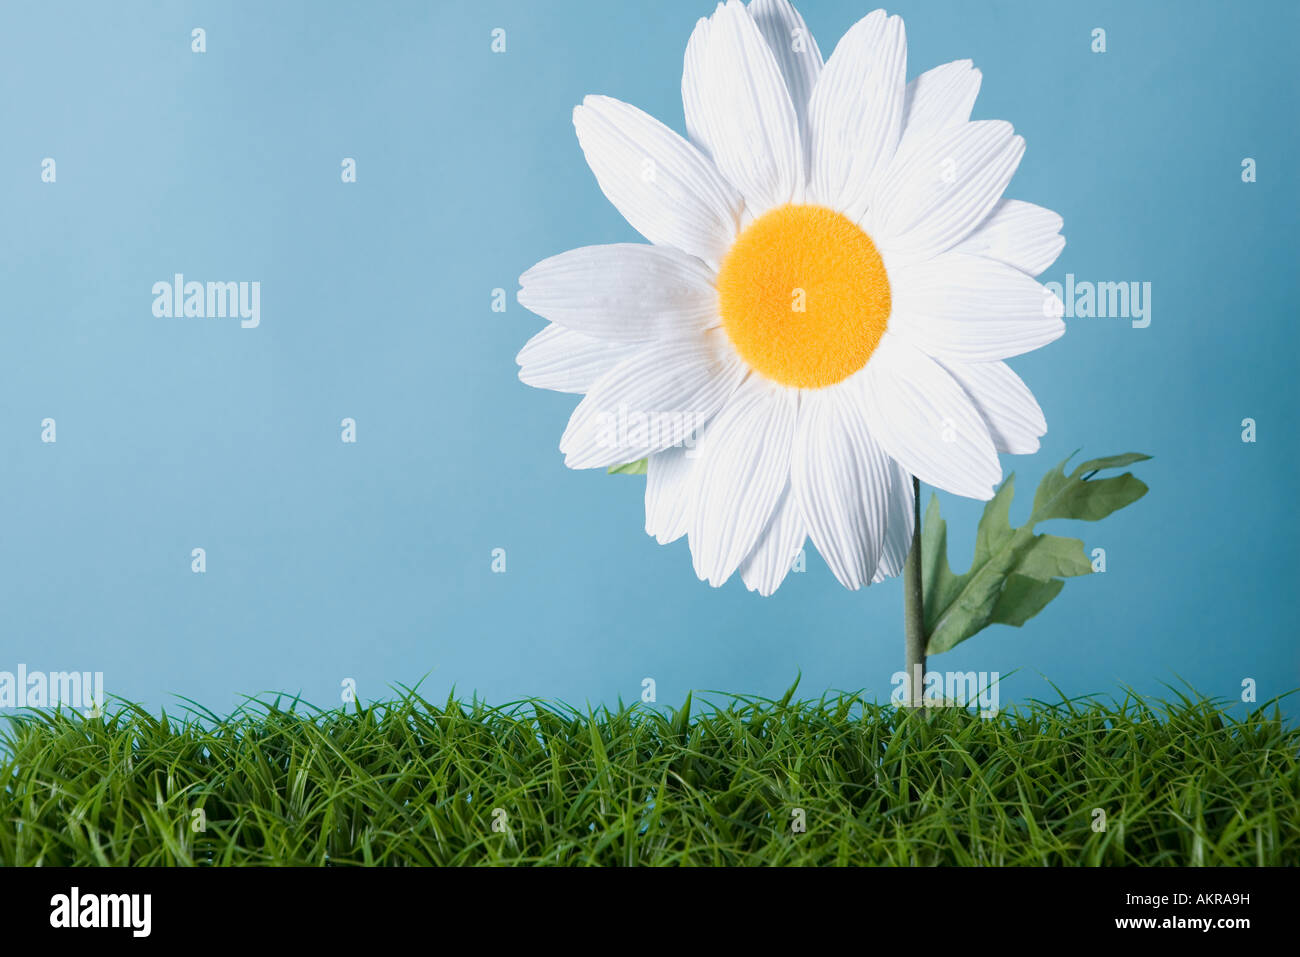 A fake flower - Stock Image